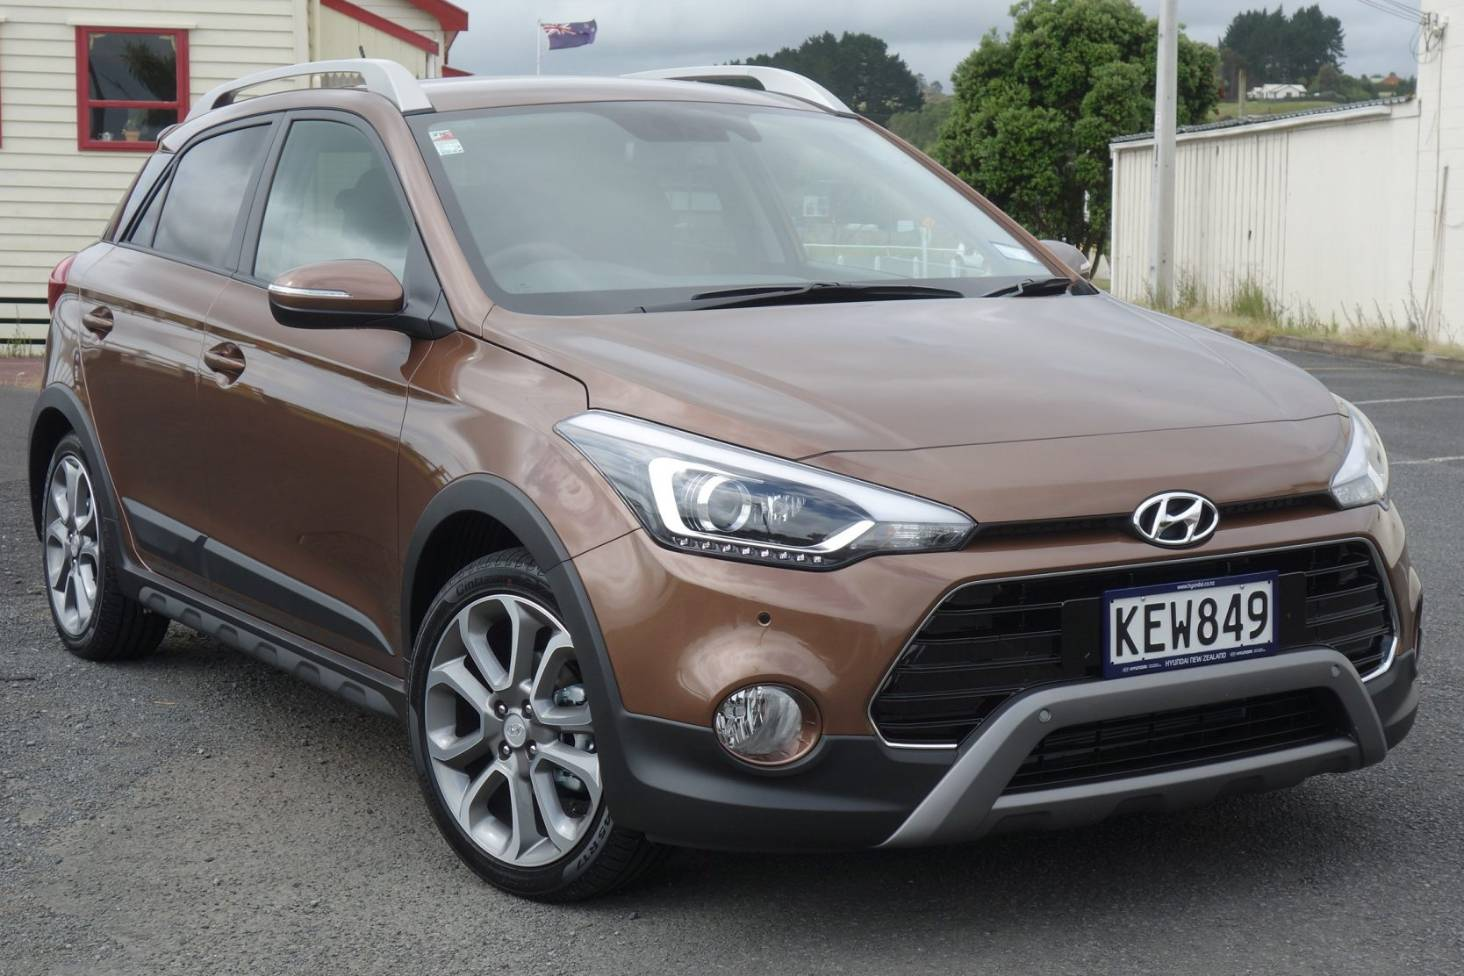 New I20 Cross Shows The Highs And Lows Of Hyundai Technology Stuff Co Nz